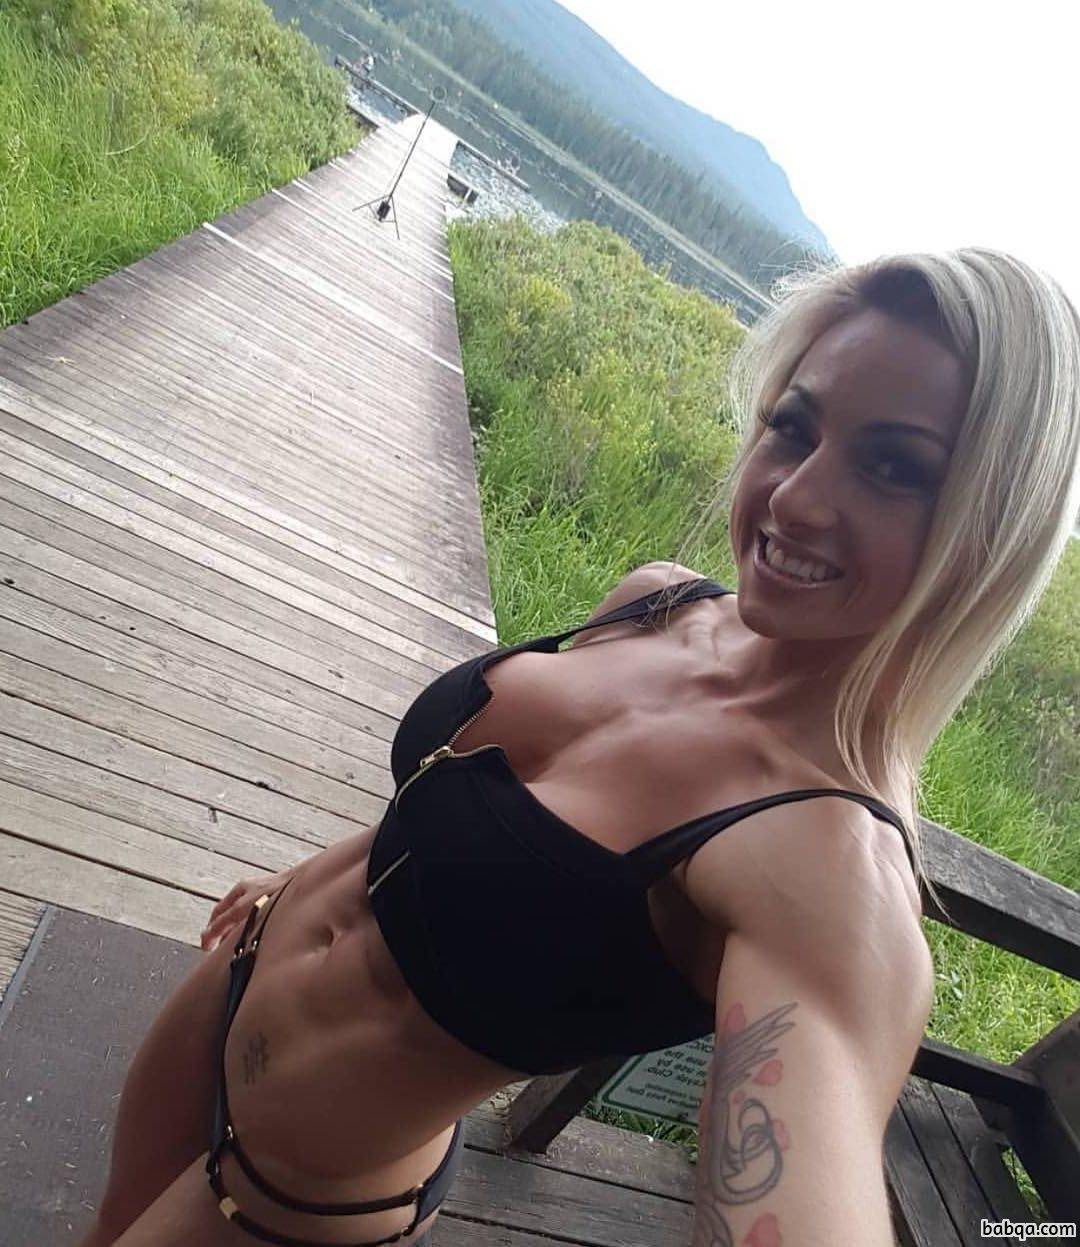 awesome lady with fitness body and muscle booty post from reddit